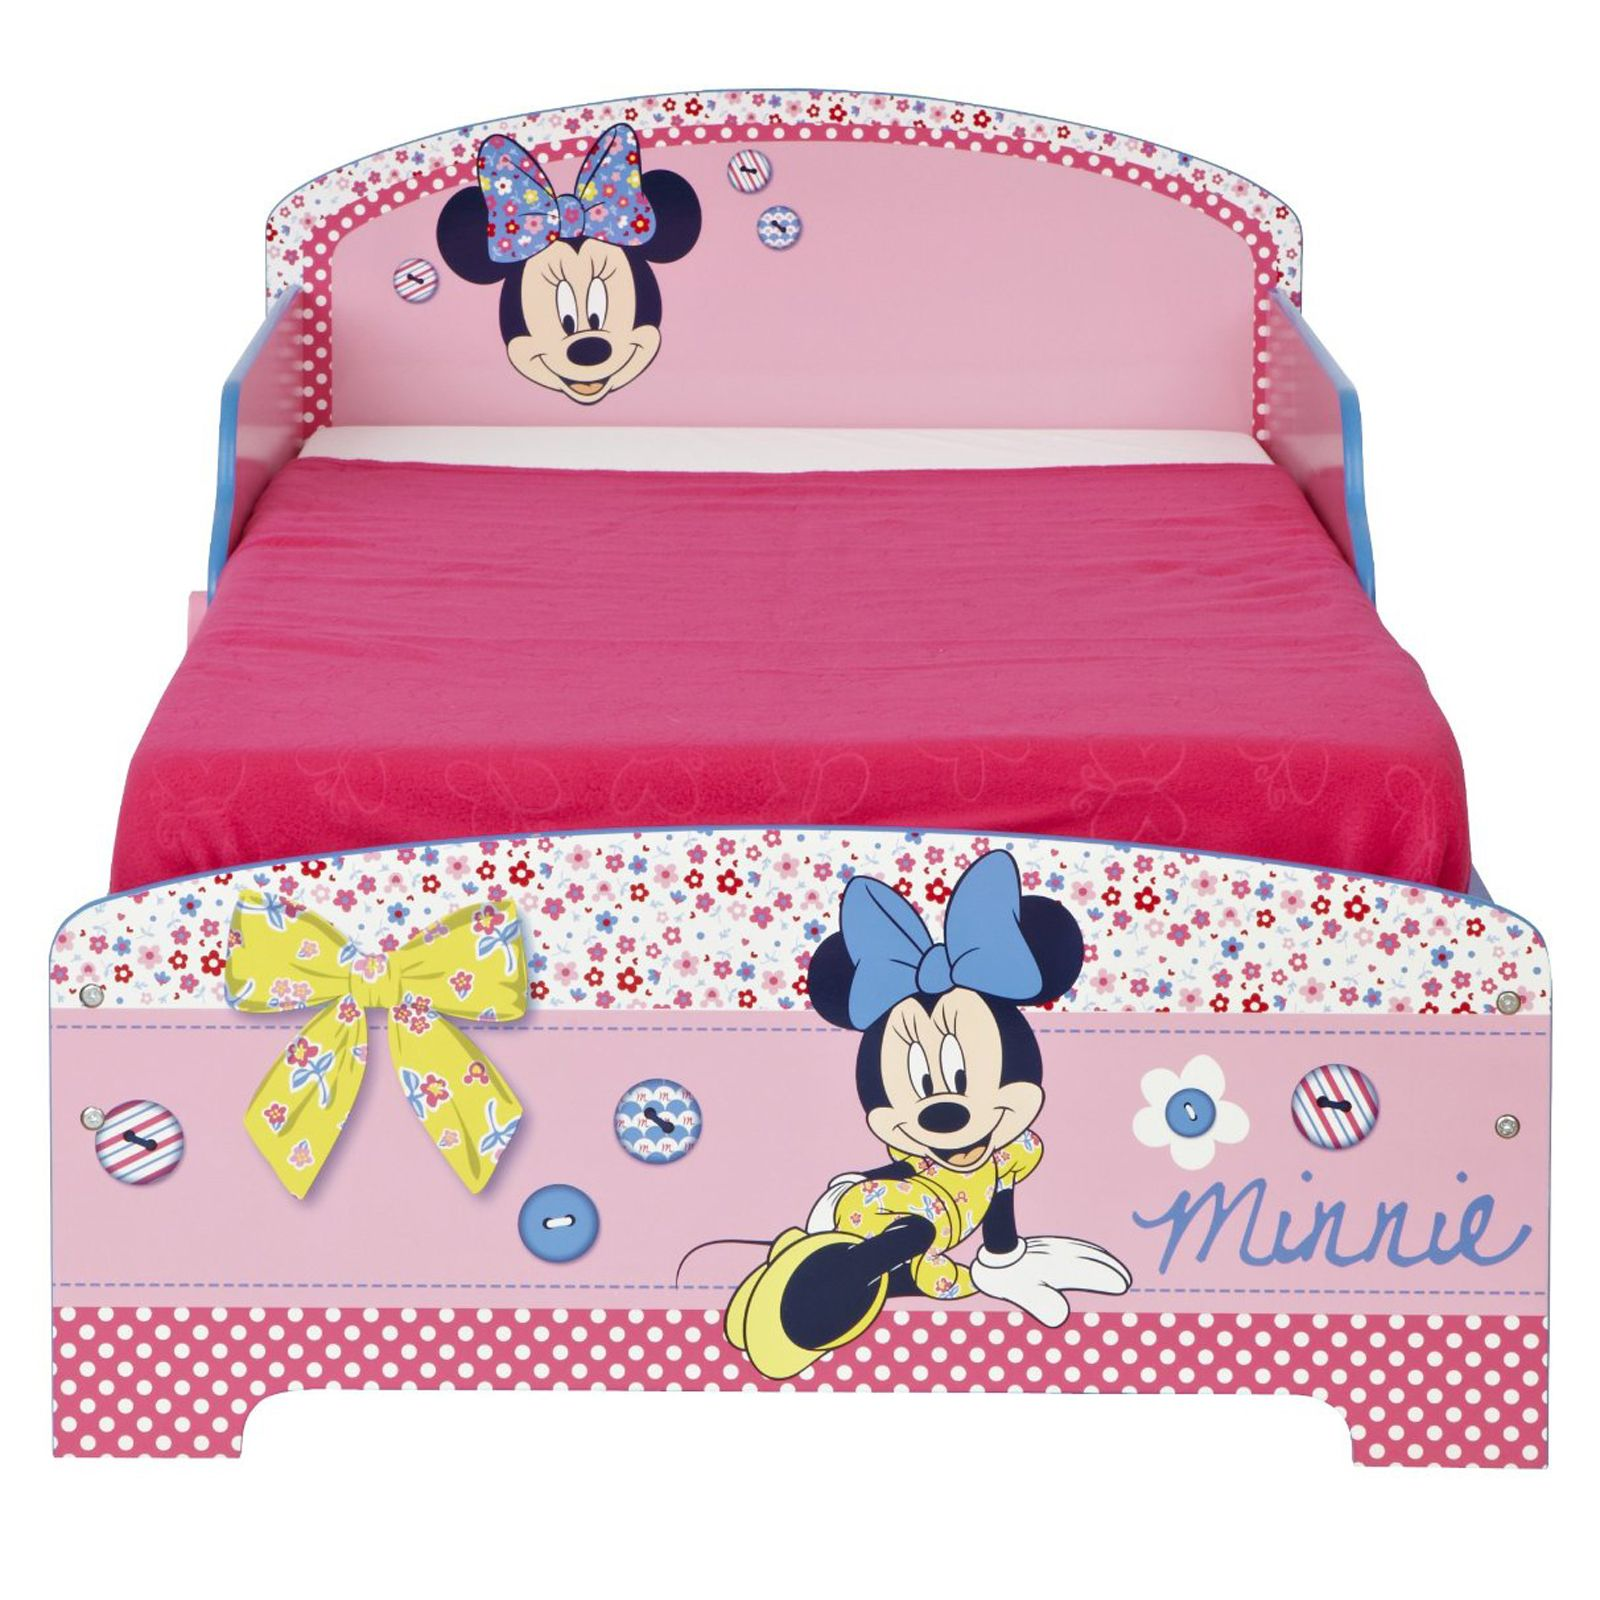 minnie mouse mdf lit enfant matelas 100 nouveaux officiel ebay. Black Bedroom Furniture Sets. Home Design Ideas